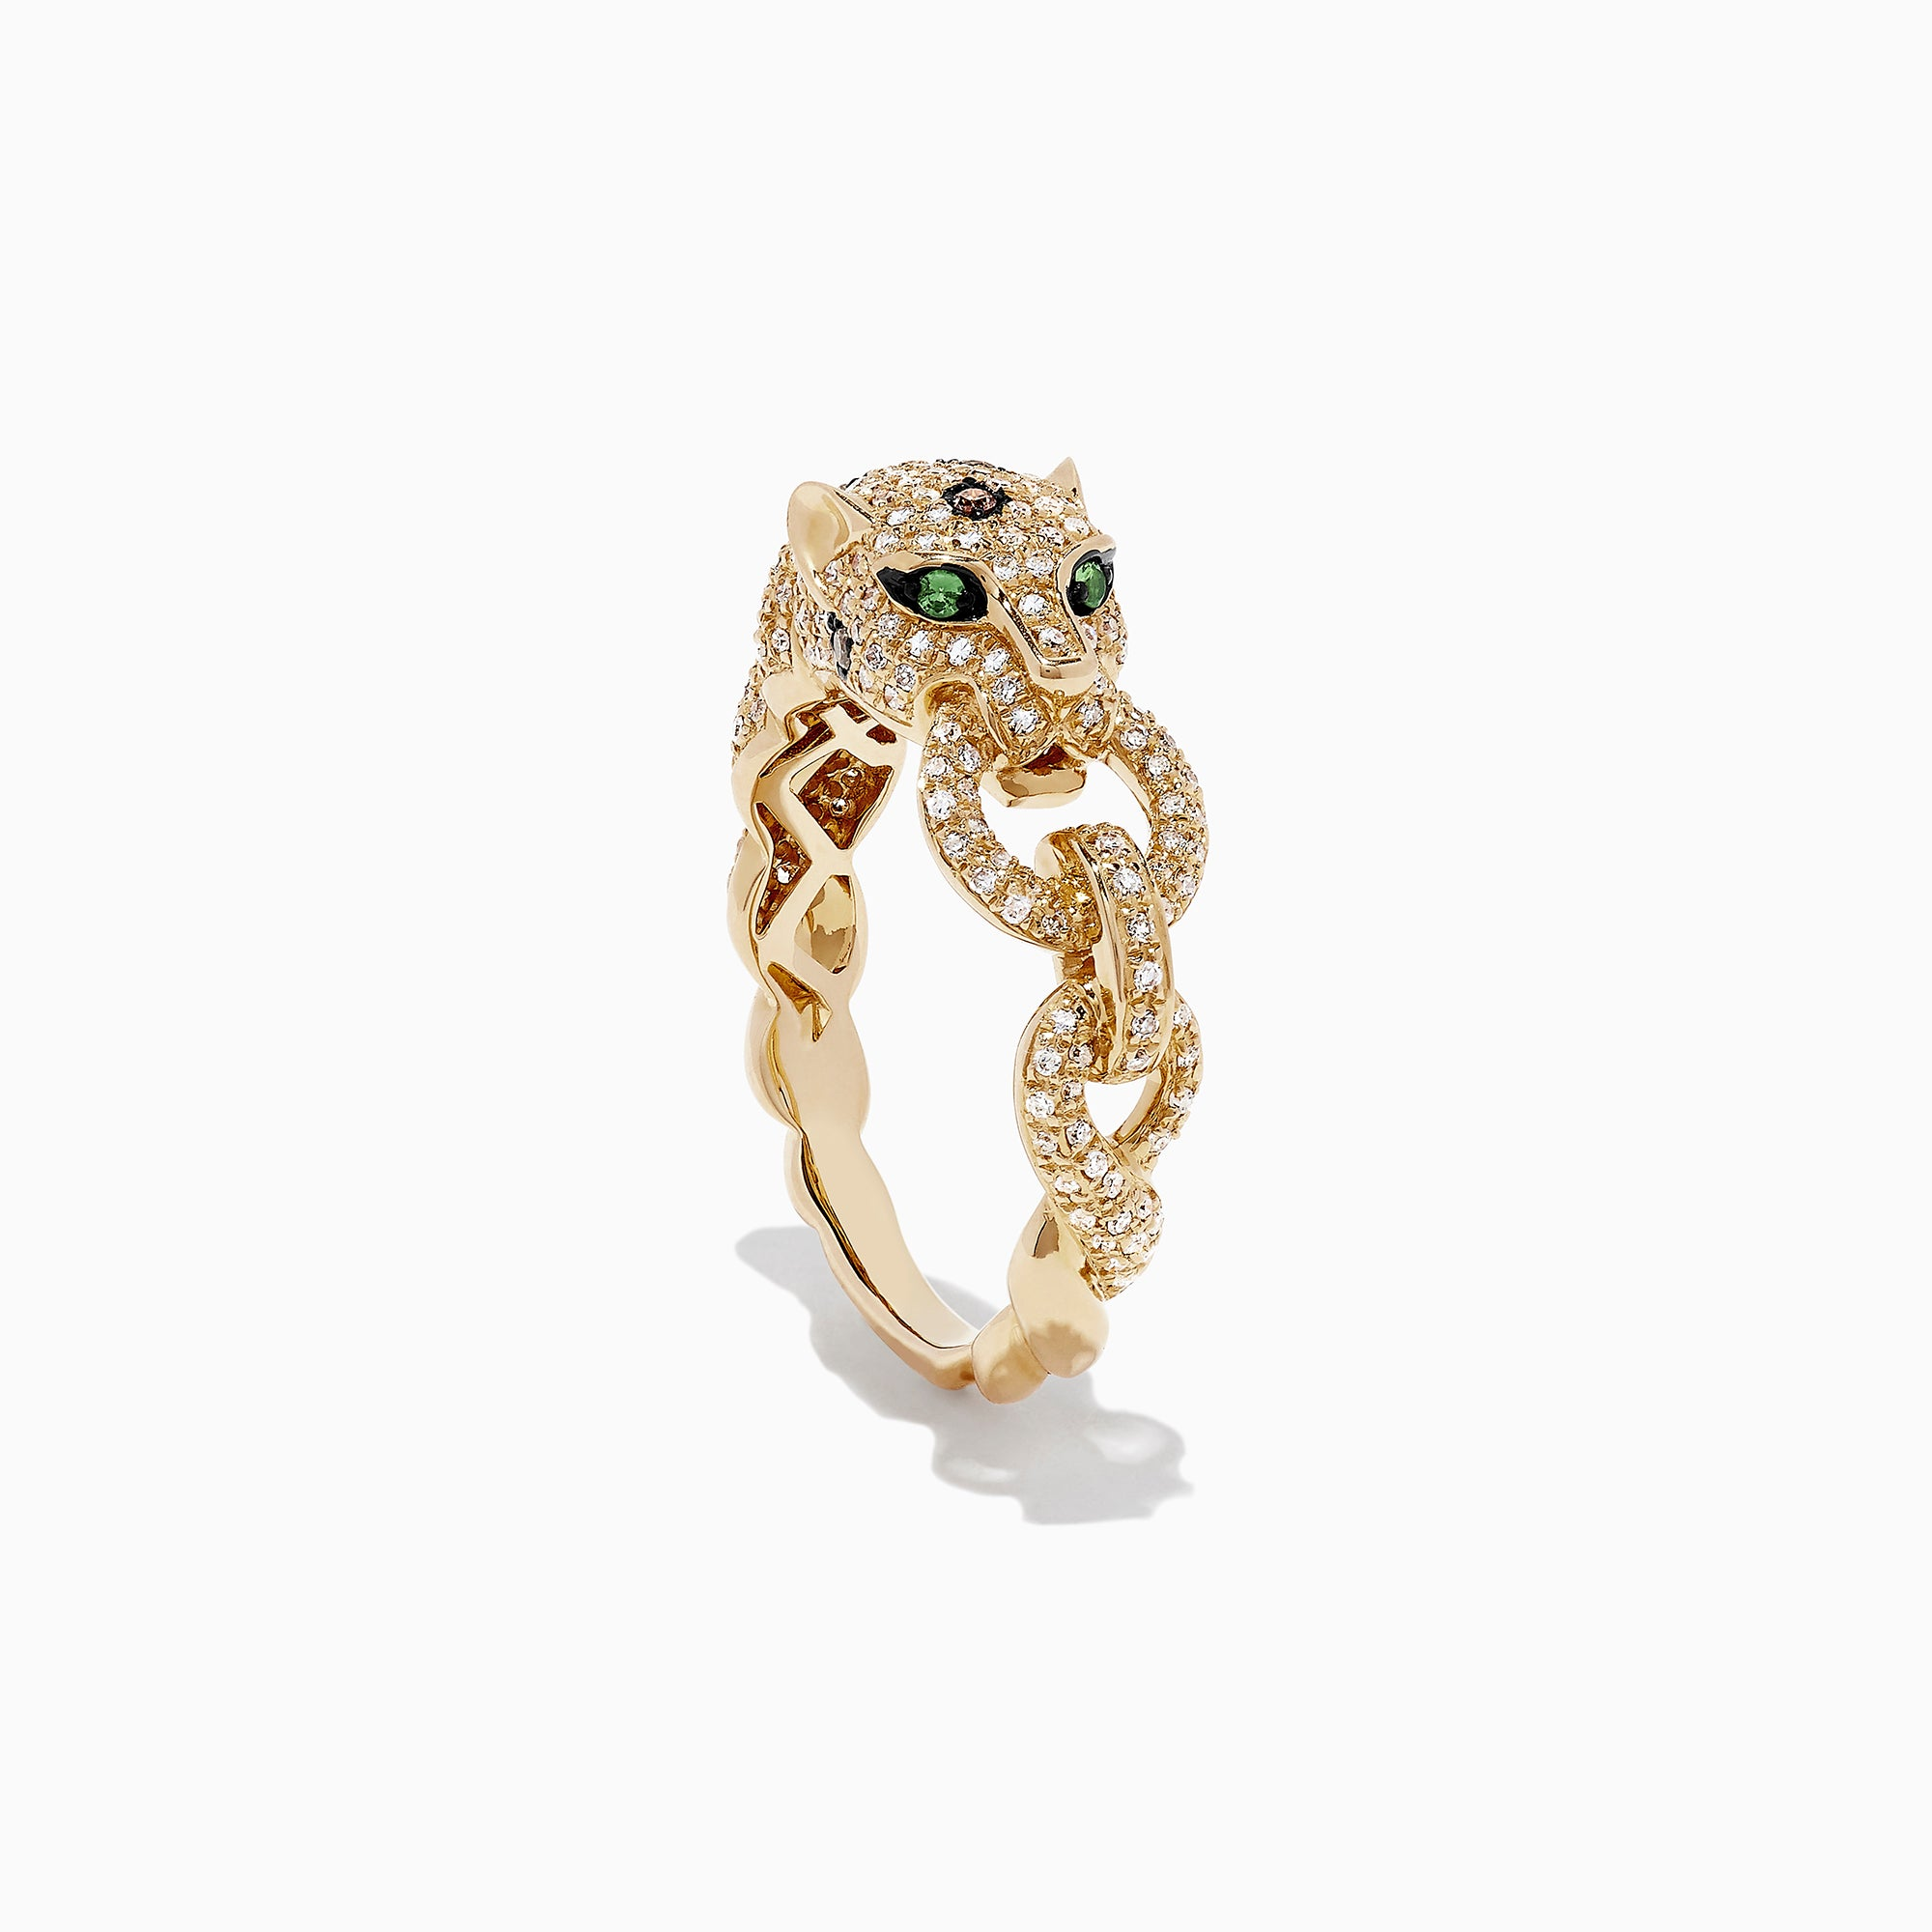 Effy Signature 14K Yellow Gold Diamond and Tsavorite Panther Ring, 0.84 TCW